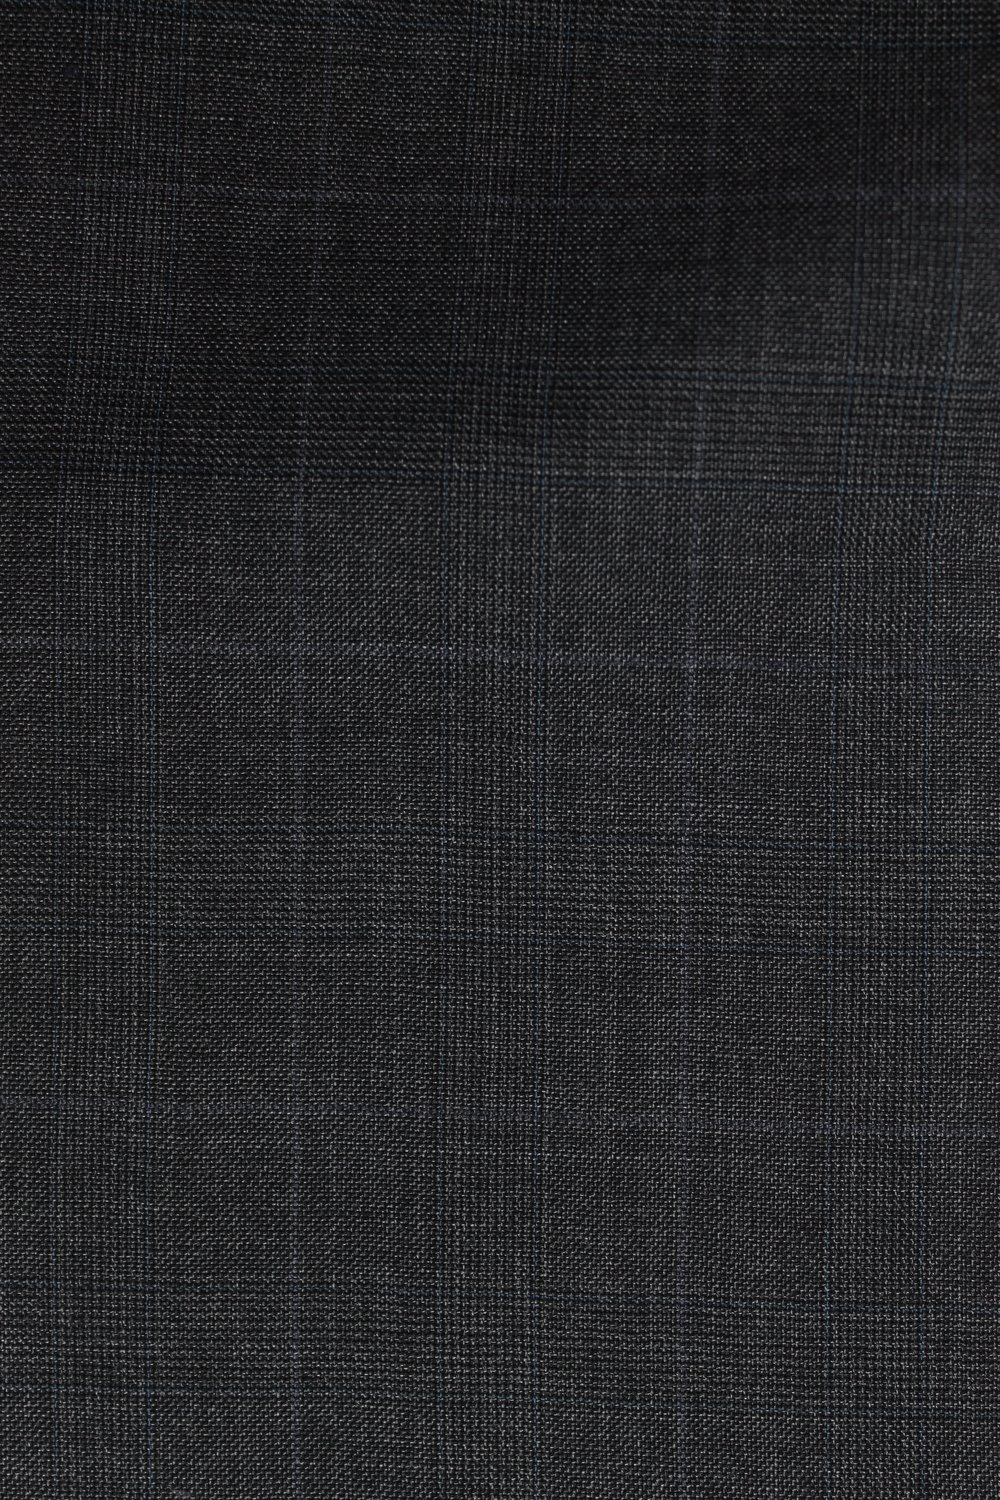 7555 Glen Plaid Gray Blue Overpane 280g.JPG